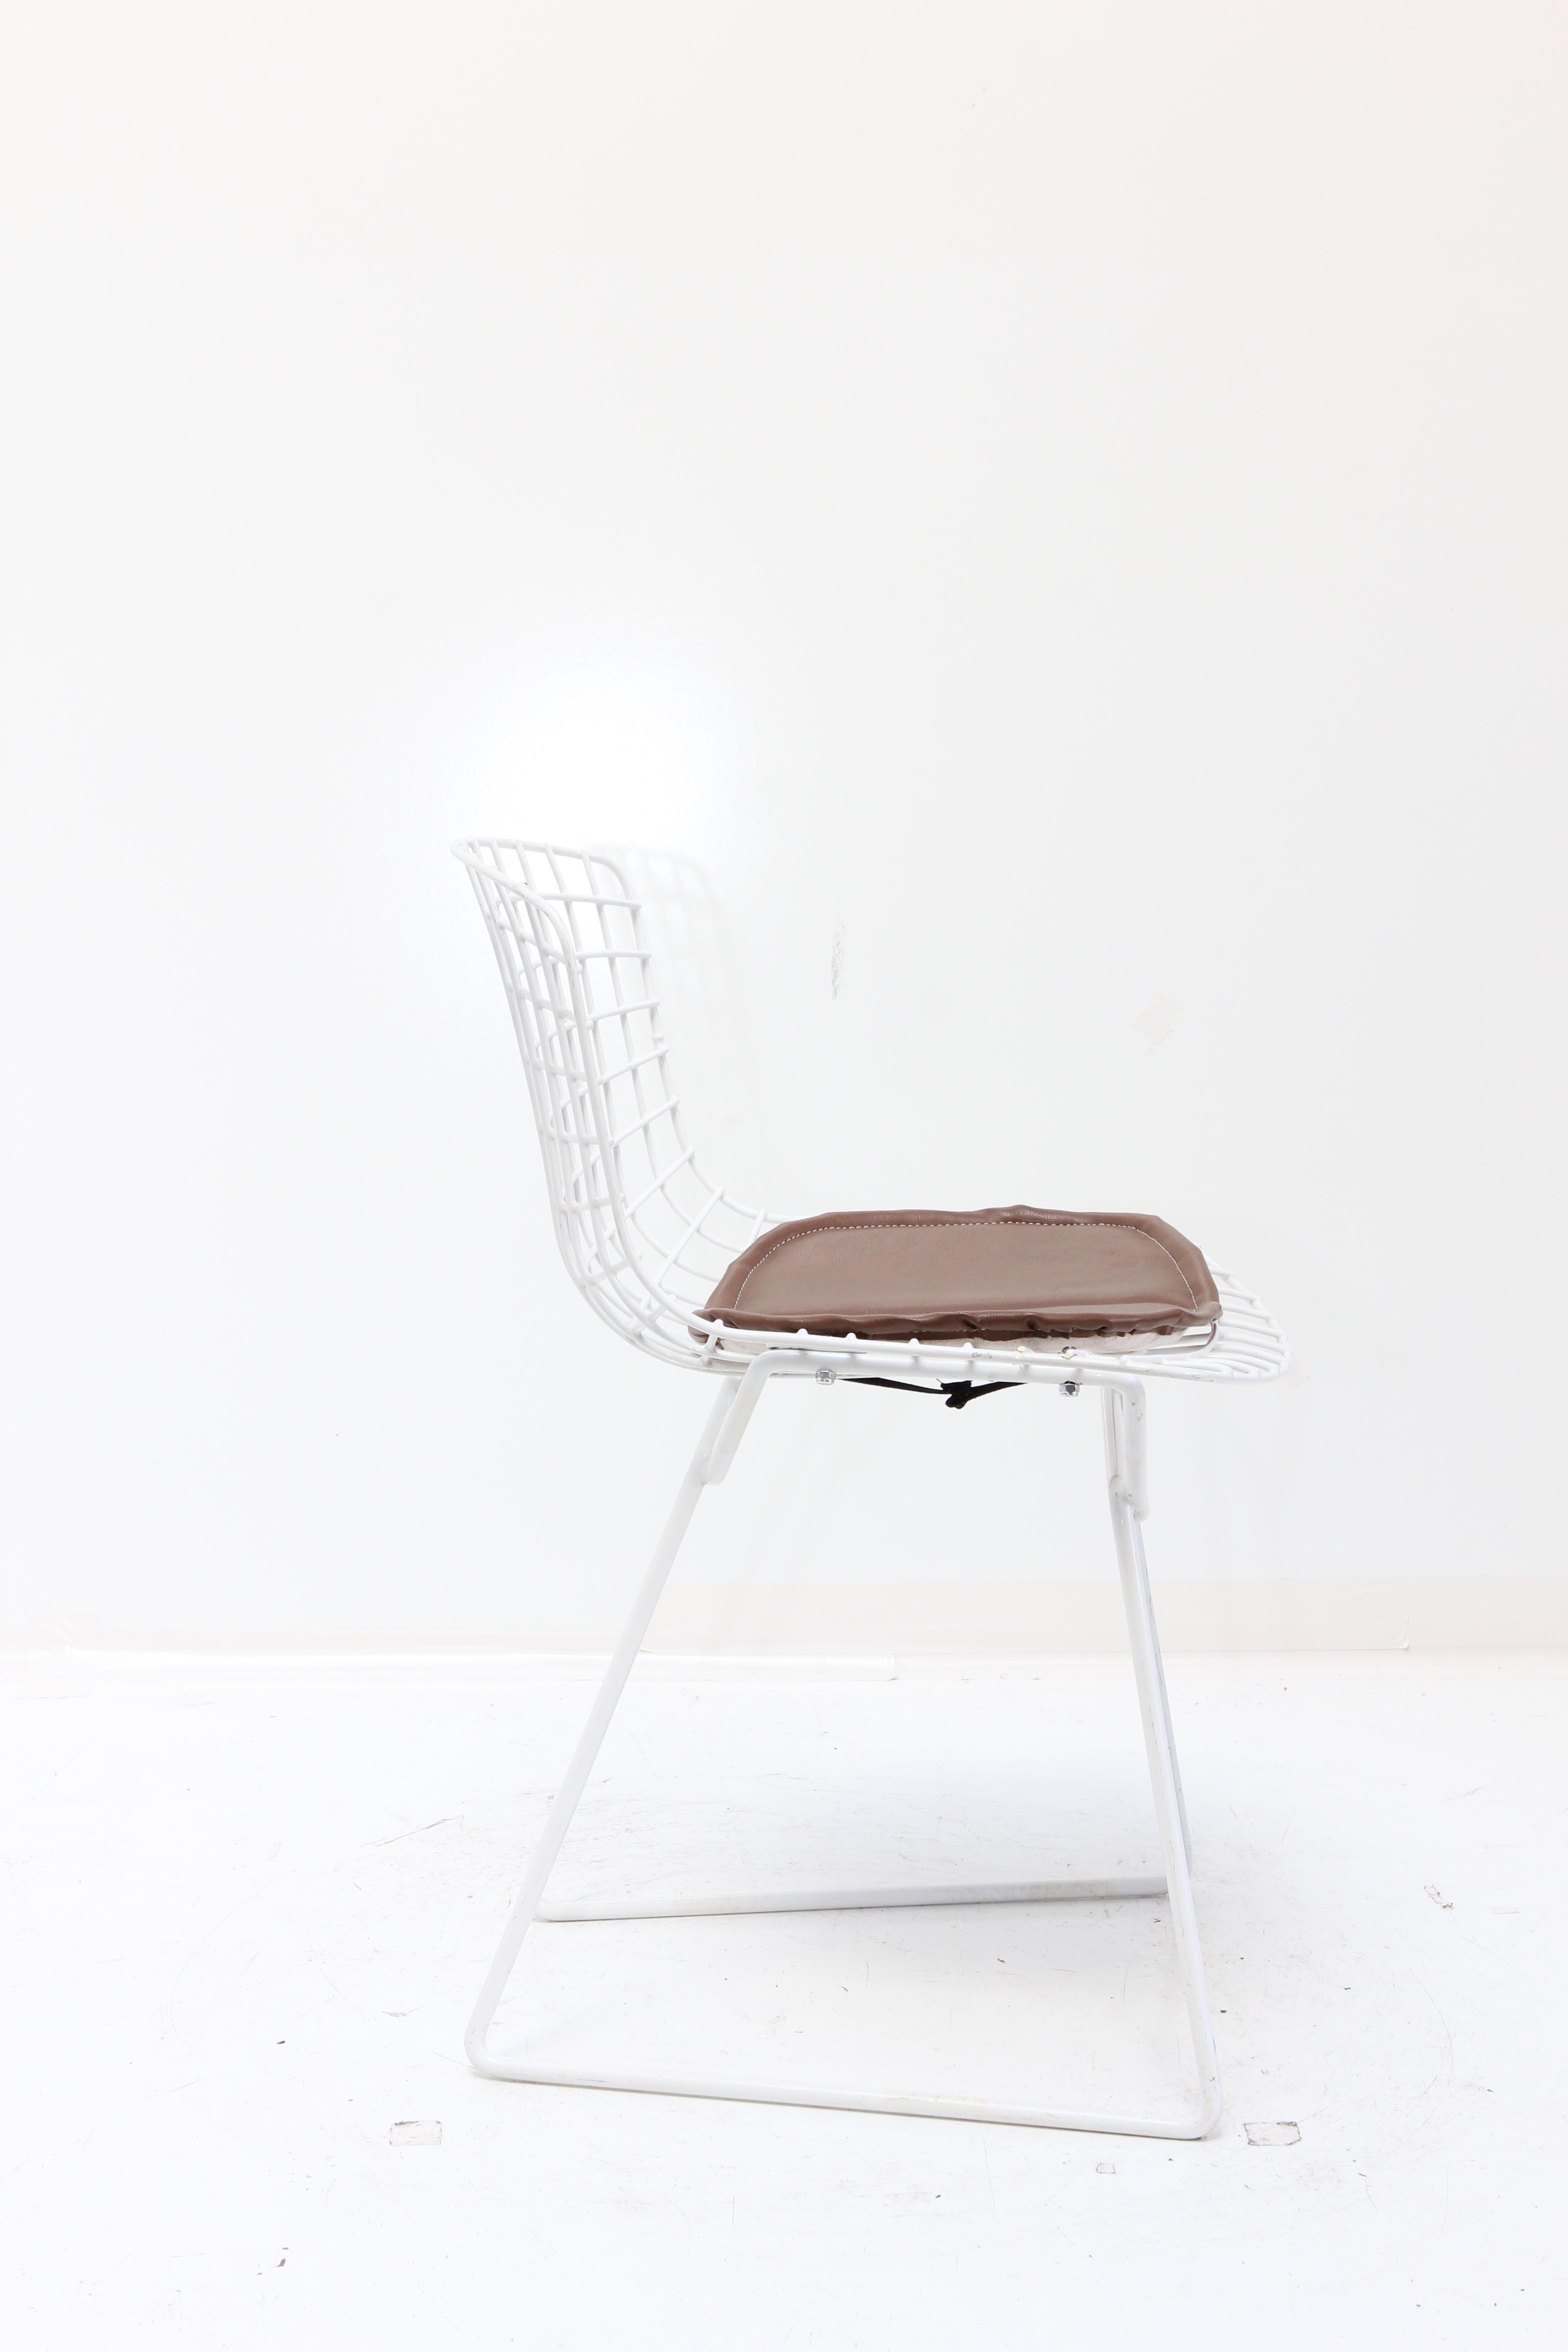 Knoll Bertoia Child Size Chairs White/Brown